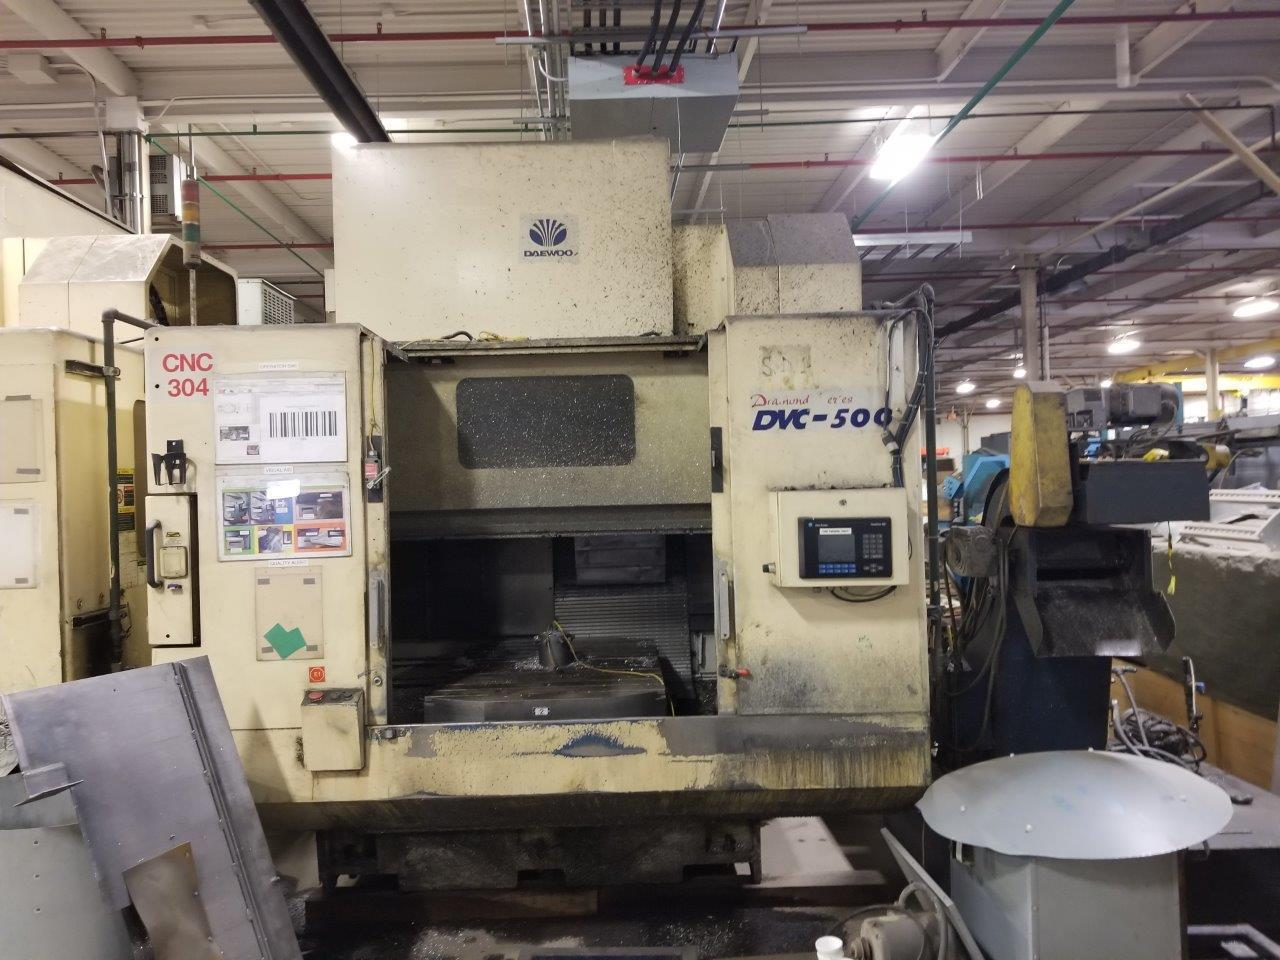 Daewoo DVC-500 Vertical Machining Center